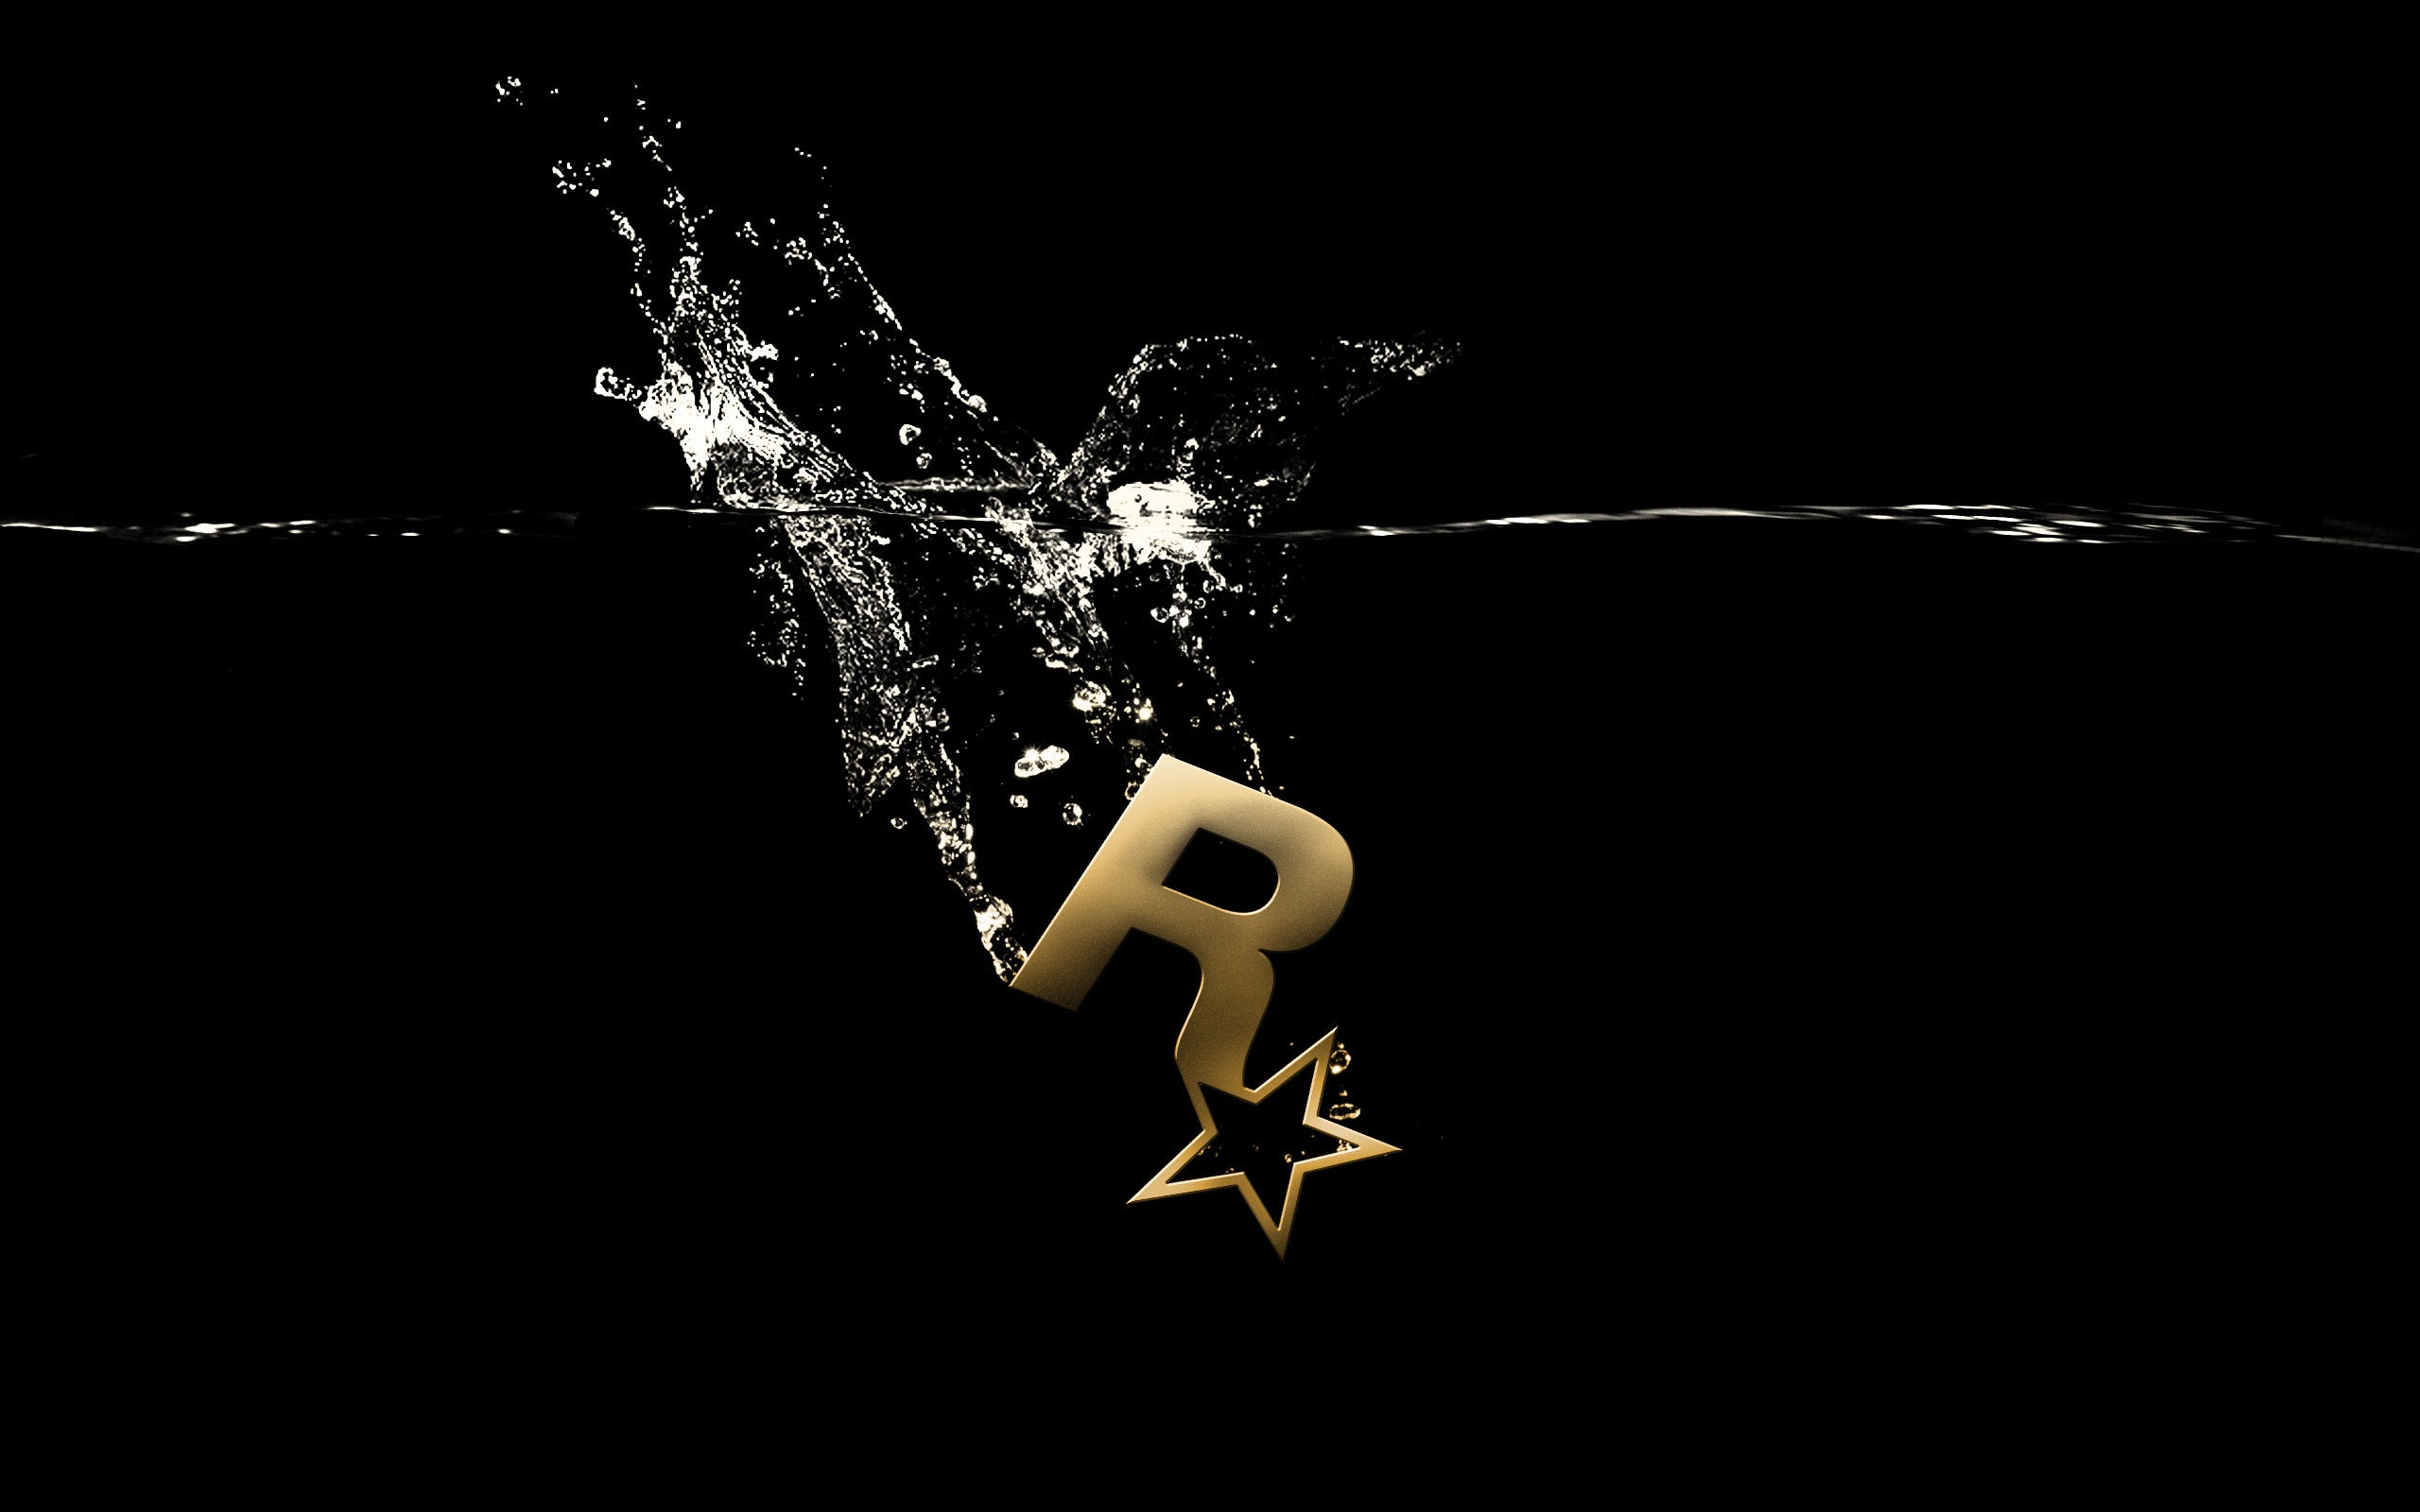 881351 Rockstar Games Logo Wallpapers 2560x1600